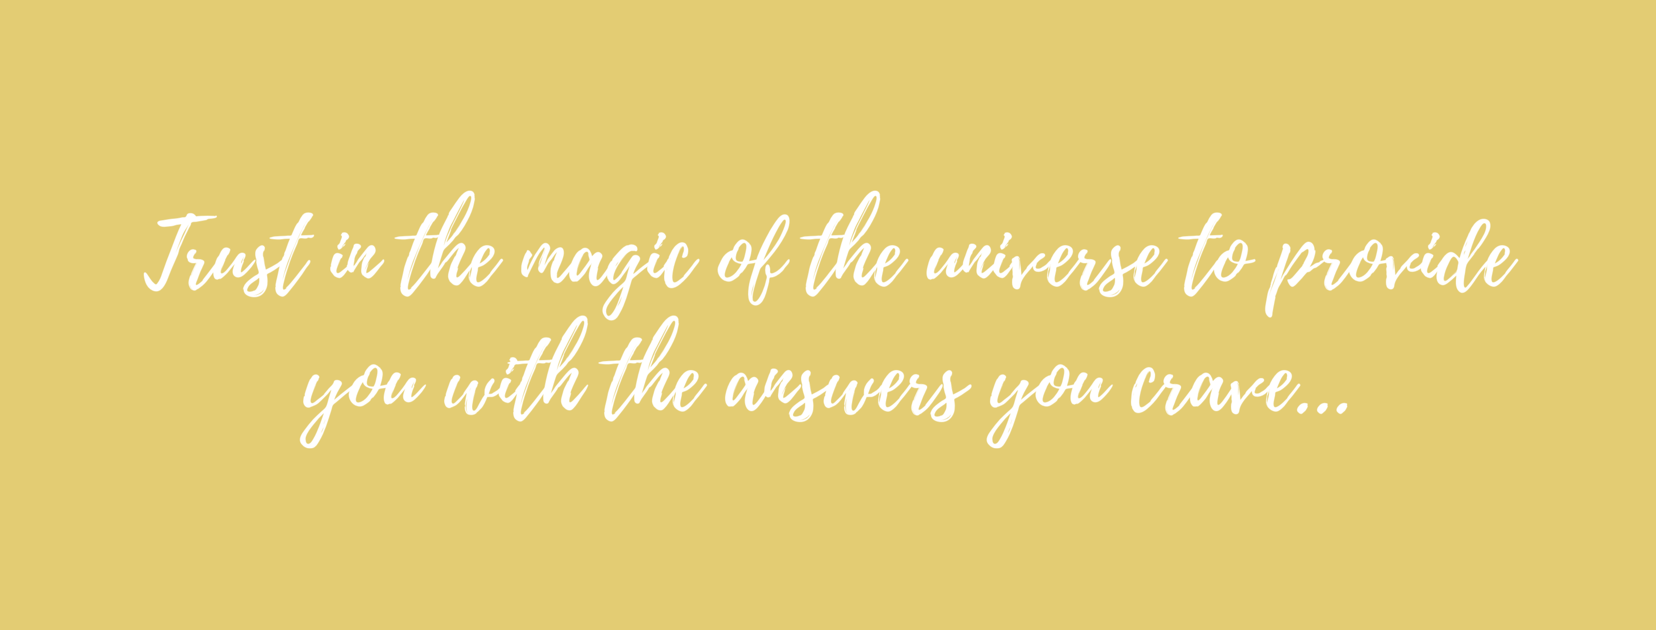 Trust in the magic of the universe to provide you with the answers you crave